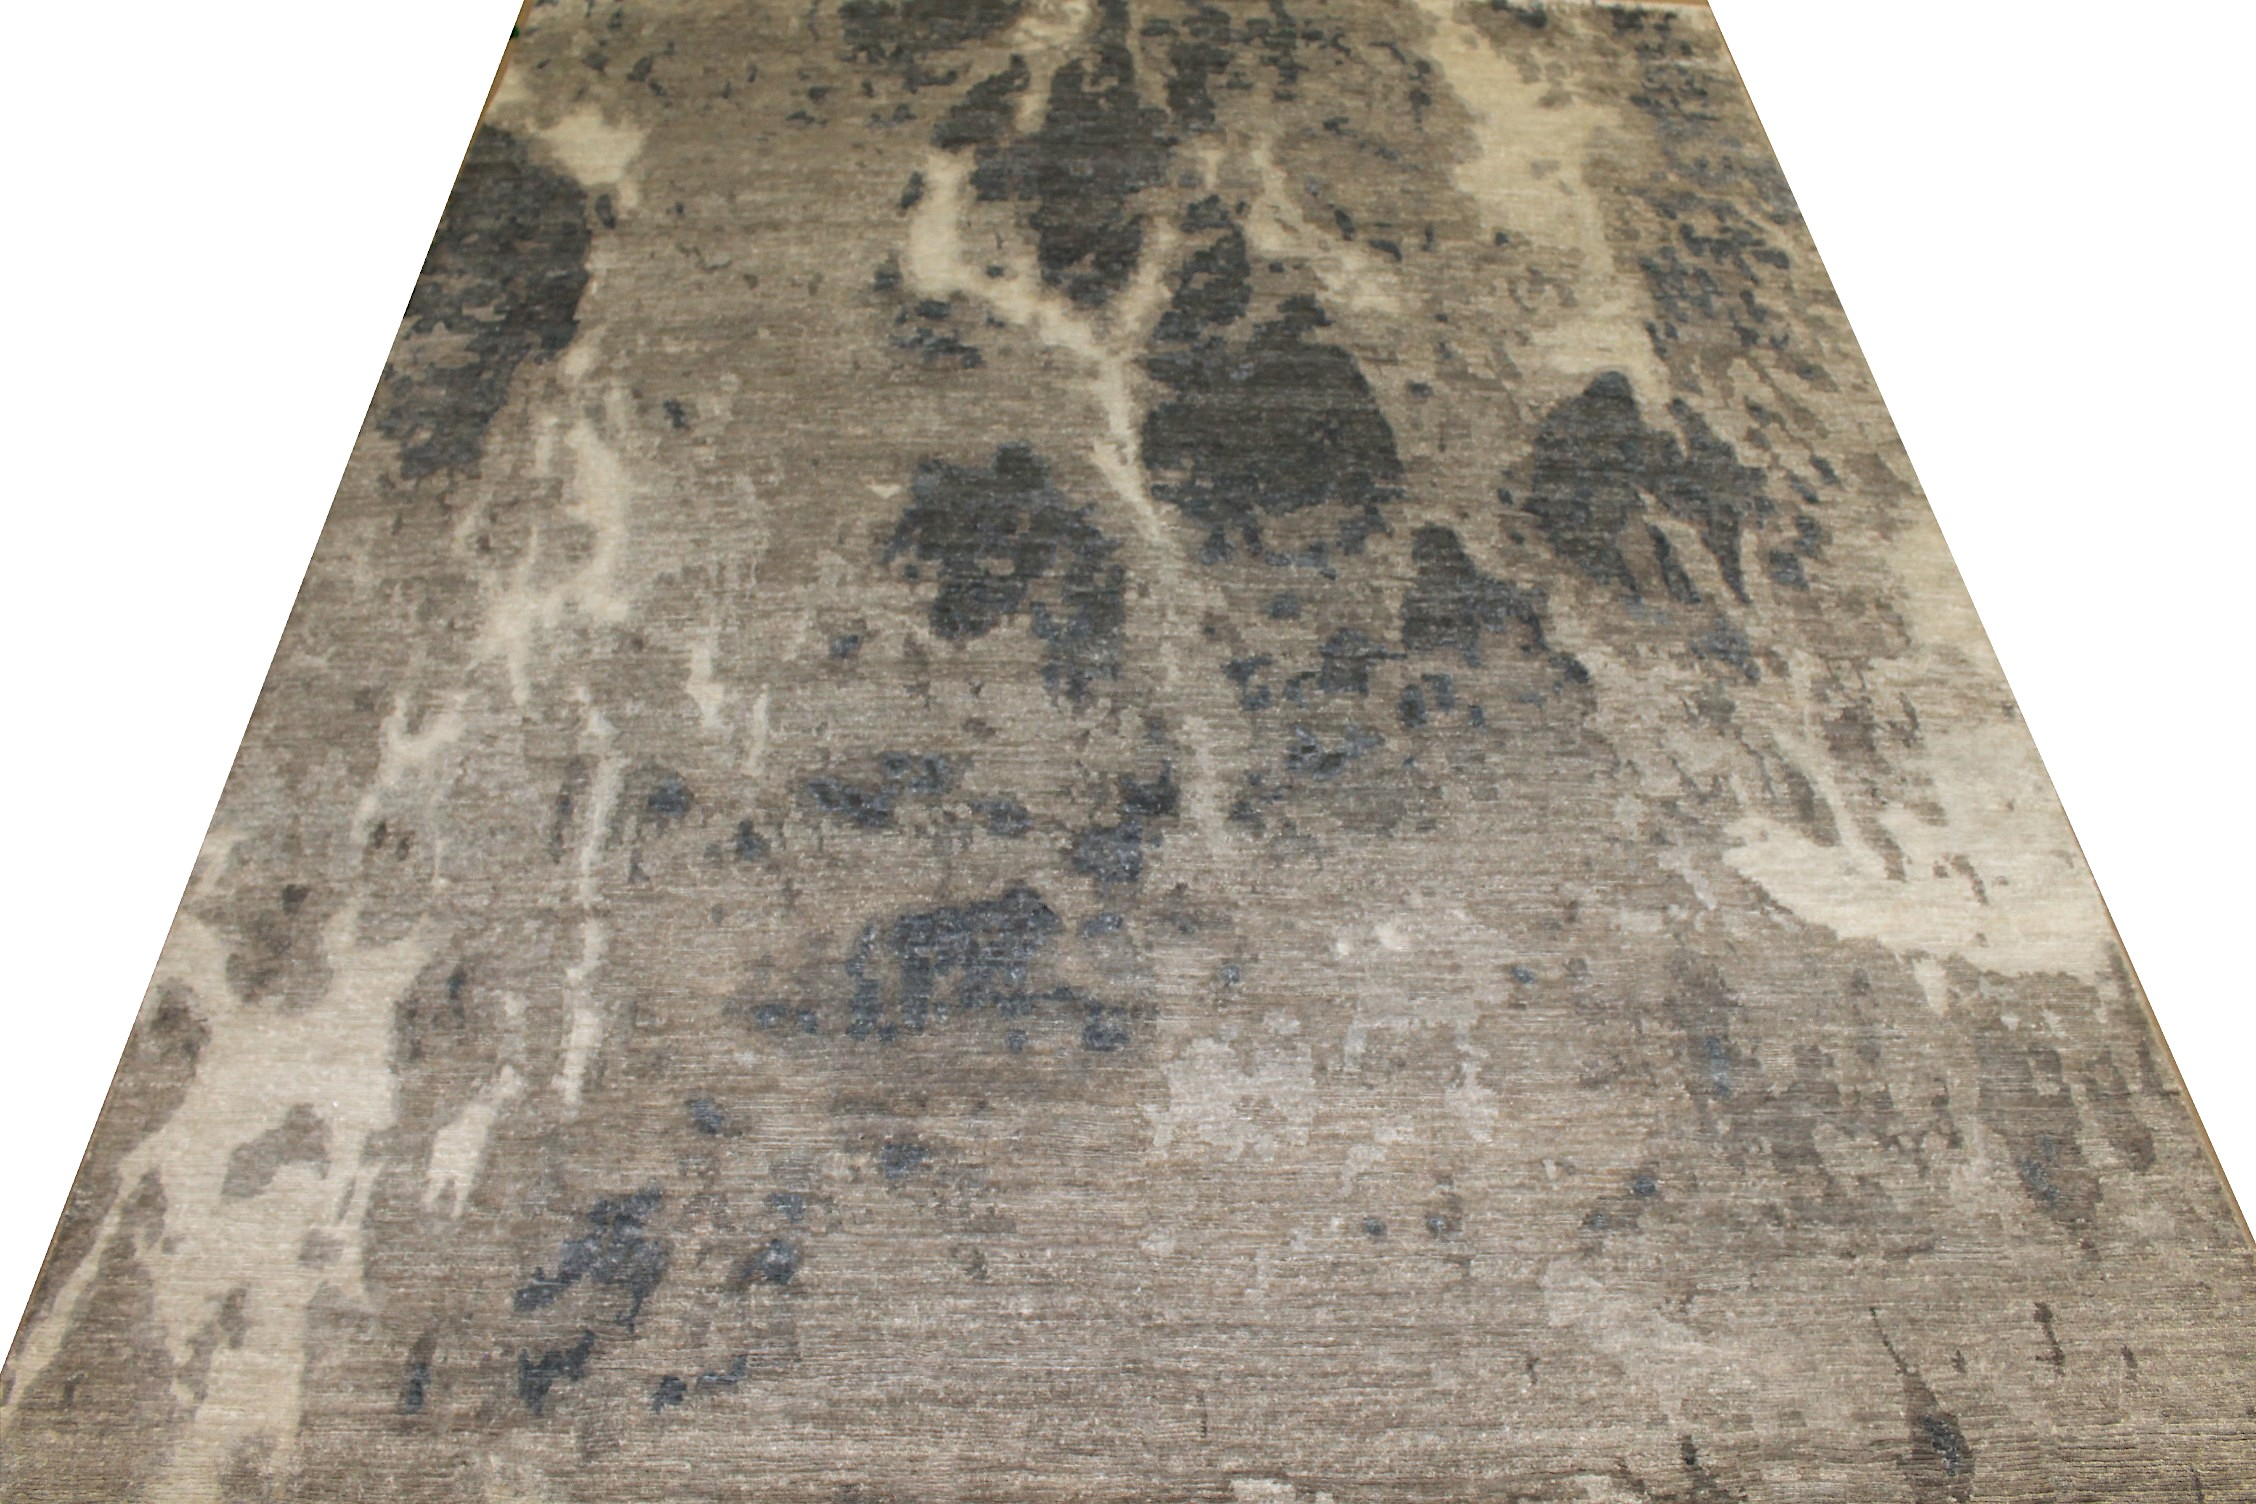 8x10 Modern Hand Knotted Wool & Viscose Area Rug - MR025548